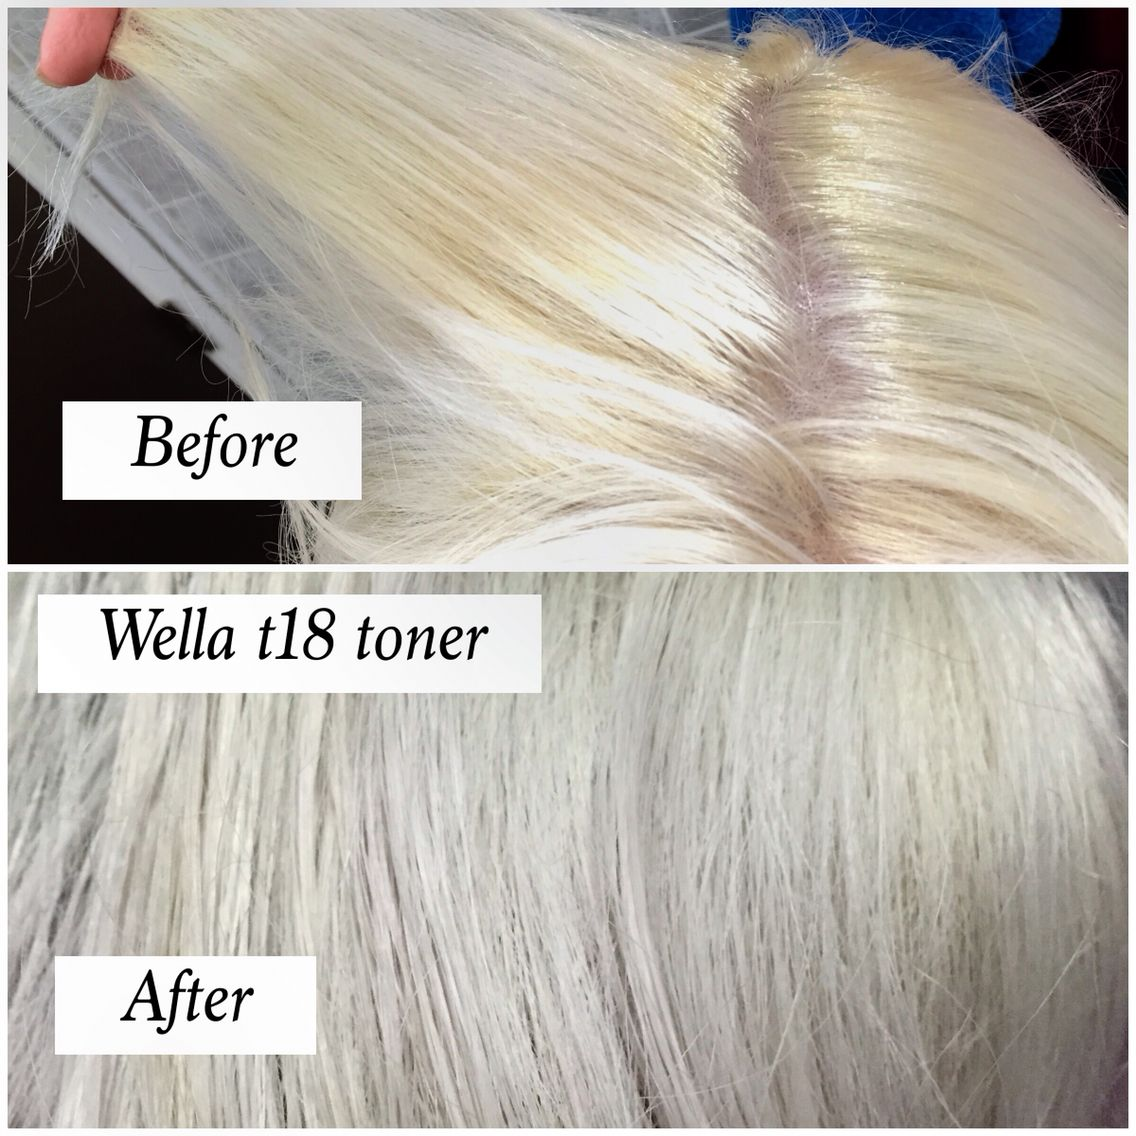 Before And After Using T18 Wella Toner On Bleach Hair How I Get My